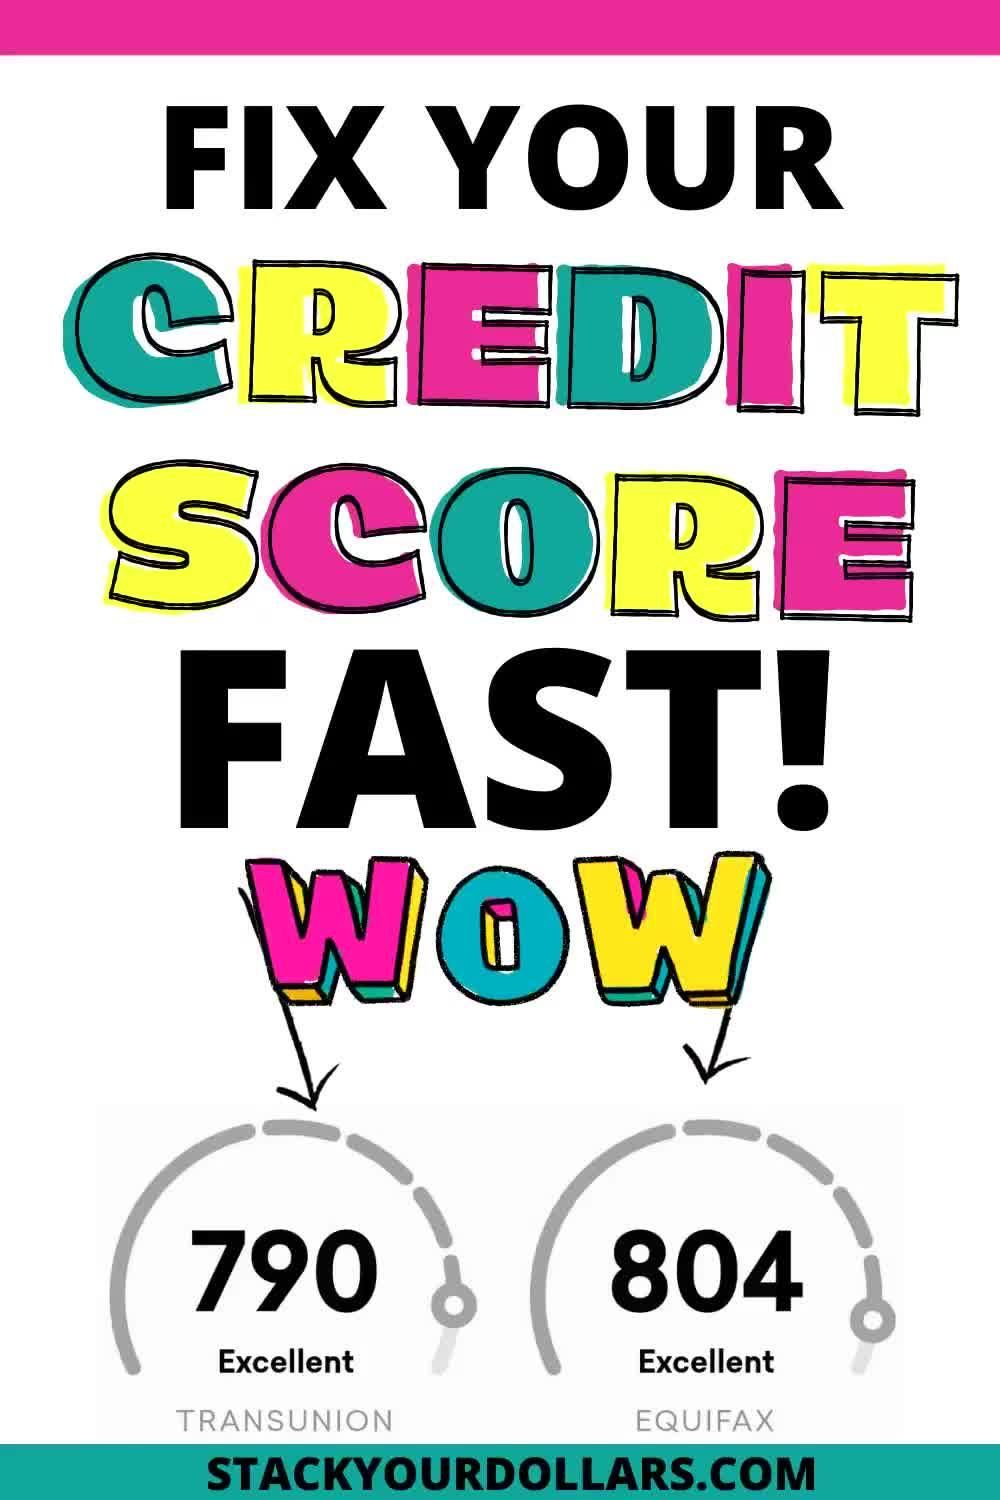 These credit repair tips will show how to fix your credit score fast! I share all the credit tips and hacks I know to help you get a better credit score like yesterday! Once you know how to improve your credit score fast, it's just a matter of time before you boost your credit score to the 800s! Better credit can be an asset, so check out these tips so you can raise your credit score quickly! #creditscore #boostcredit #creditrepair #stackyourdollars #raisecredit